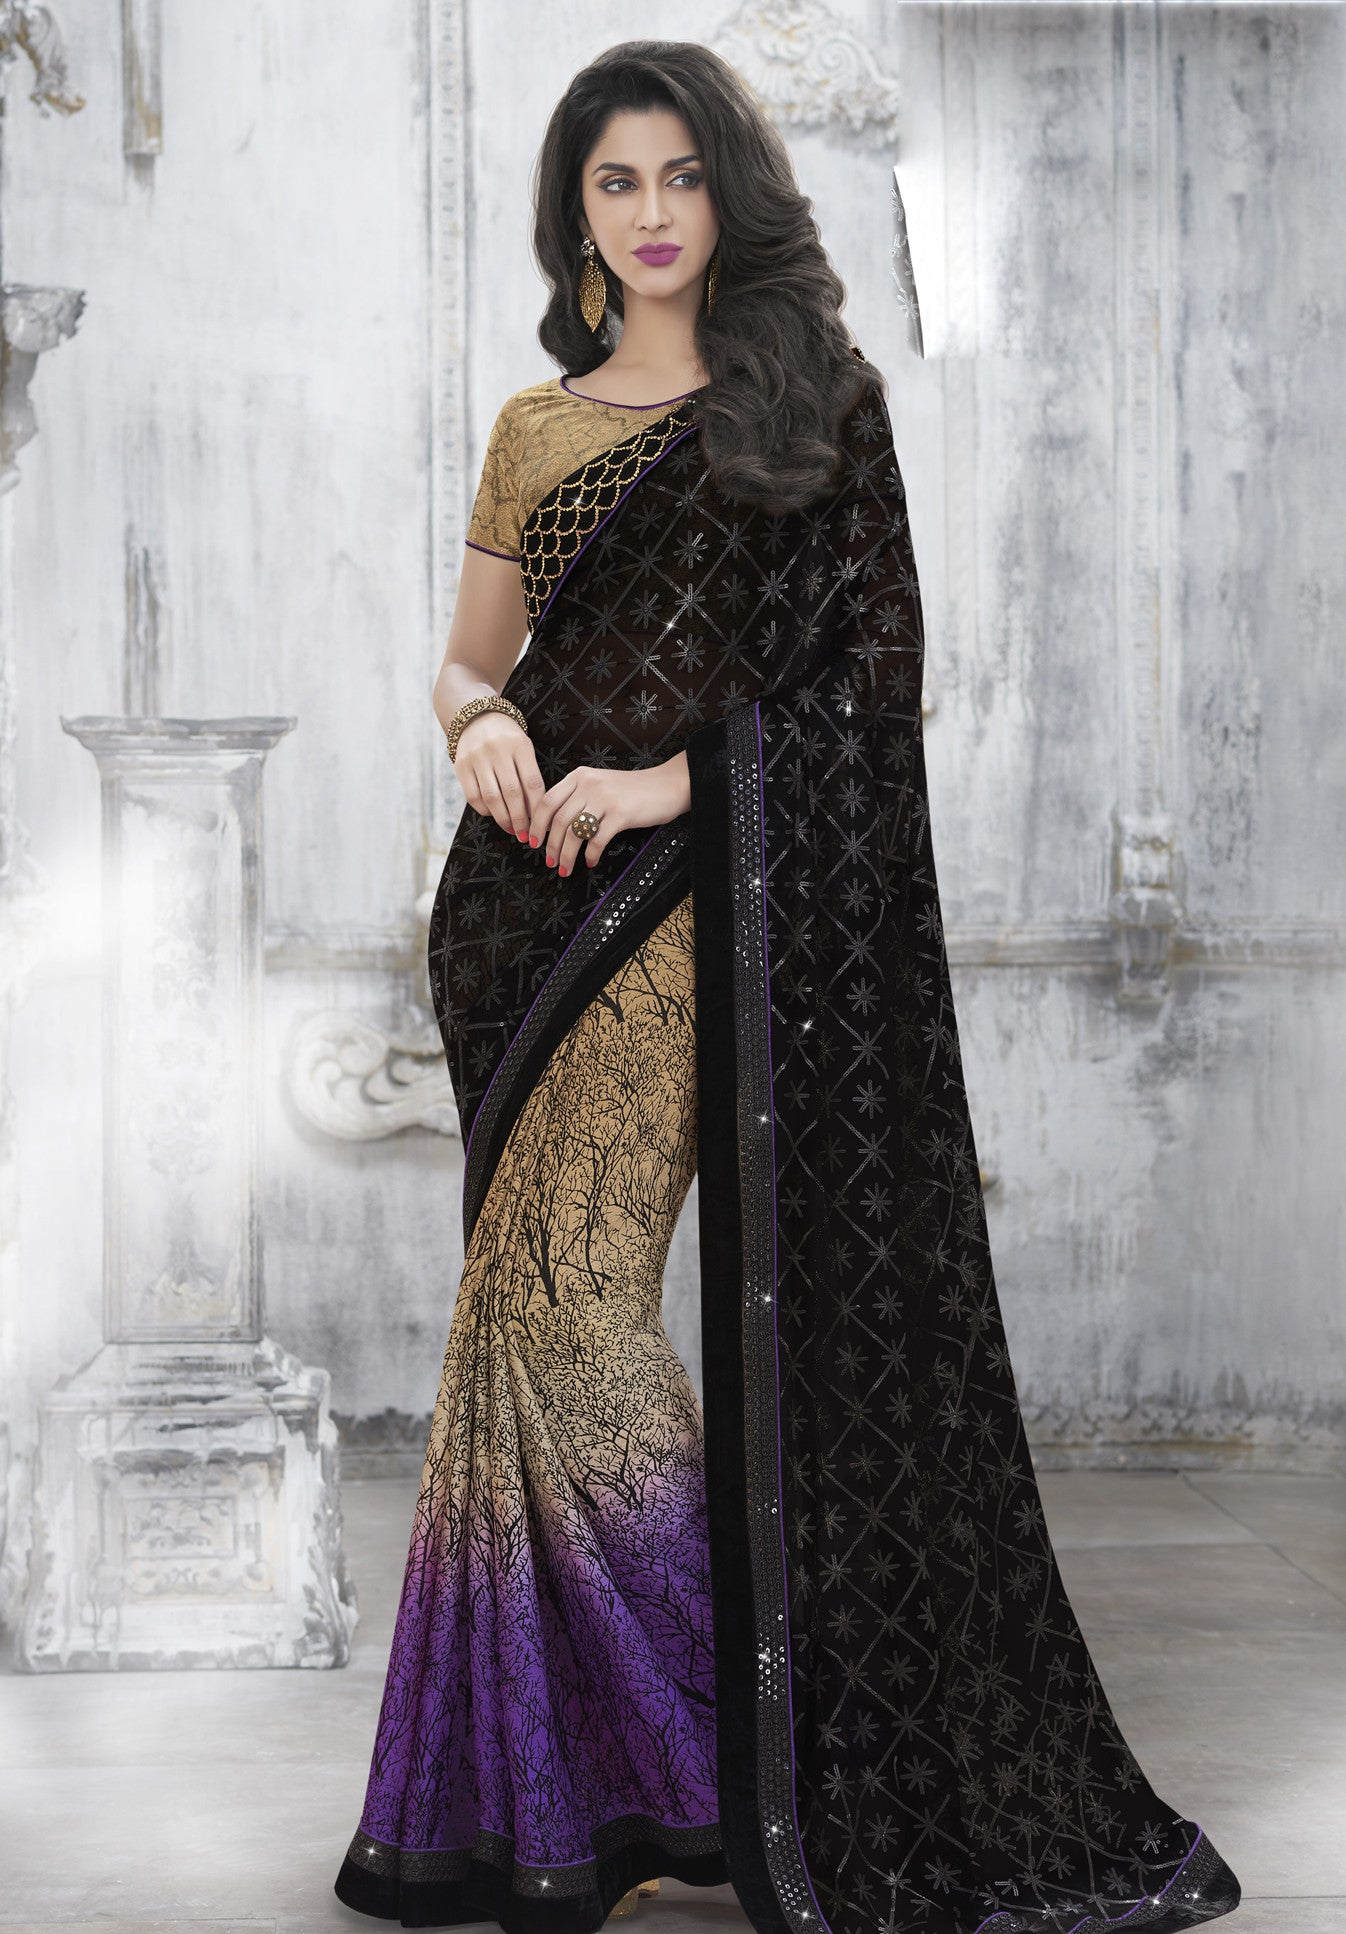 MU8814 Designer Shaded Purple Beige Black Georgette Silk Saree - Fashion Nation